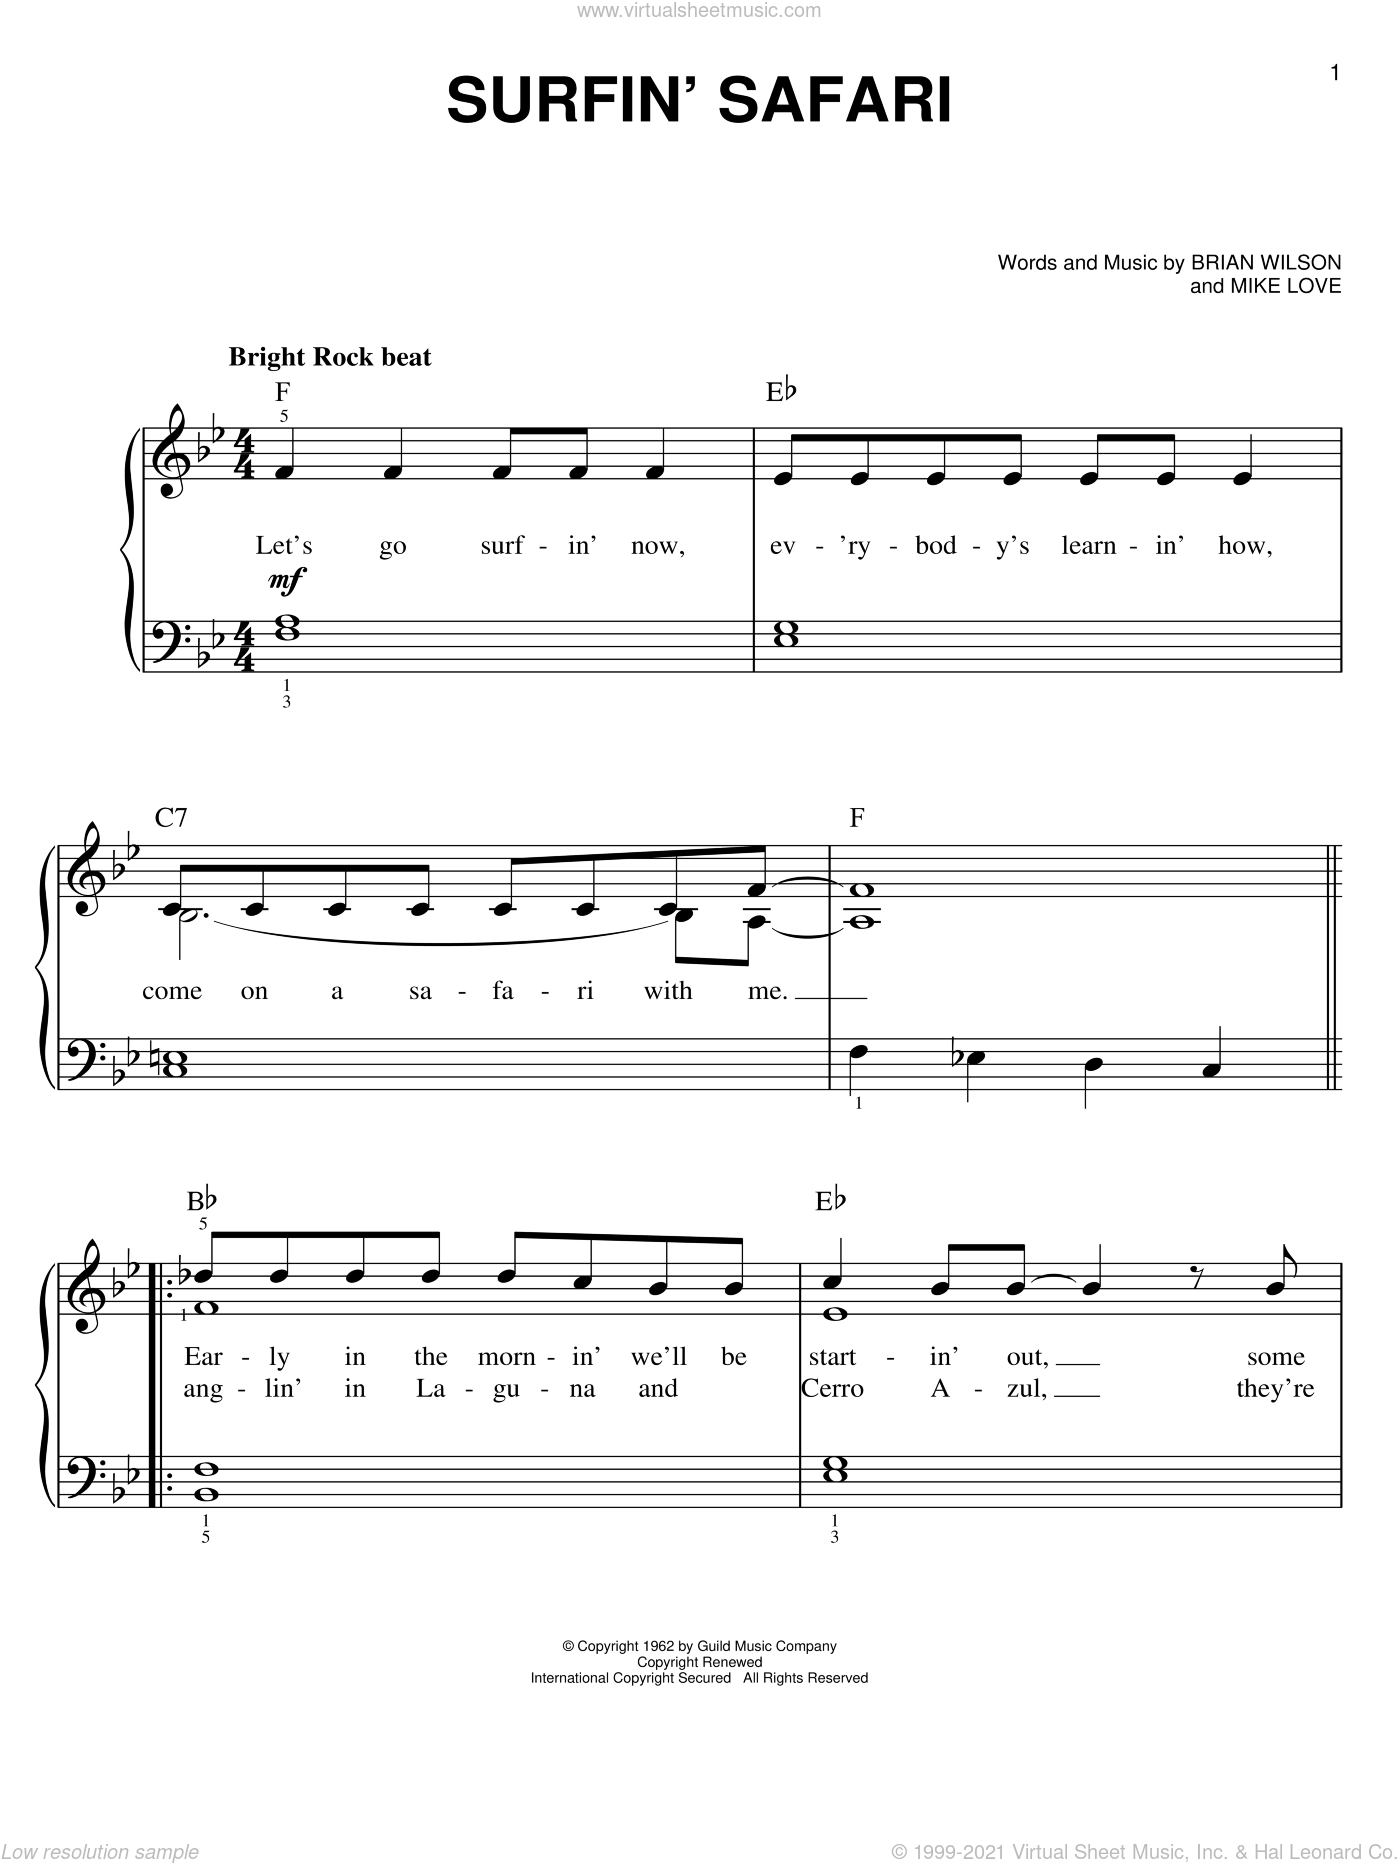 Surfin' Safari sheet music for piano solo by The Beach Boys, Brian Wilson and Mike Love, easy skill level